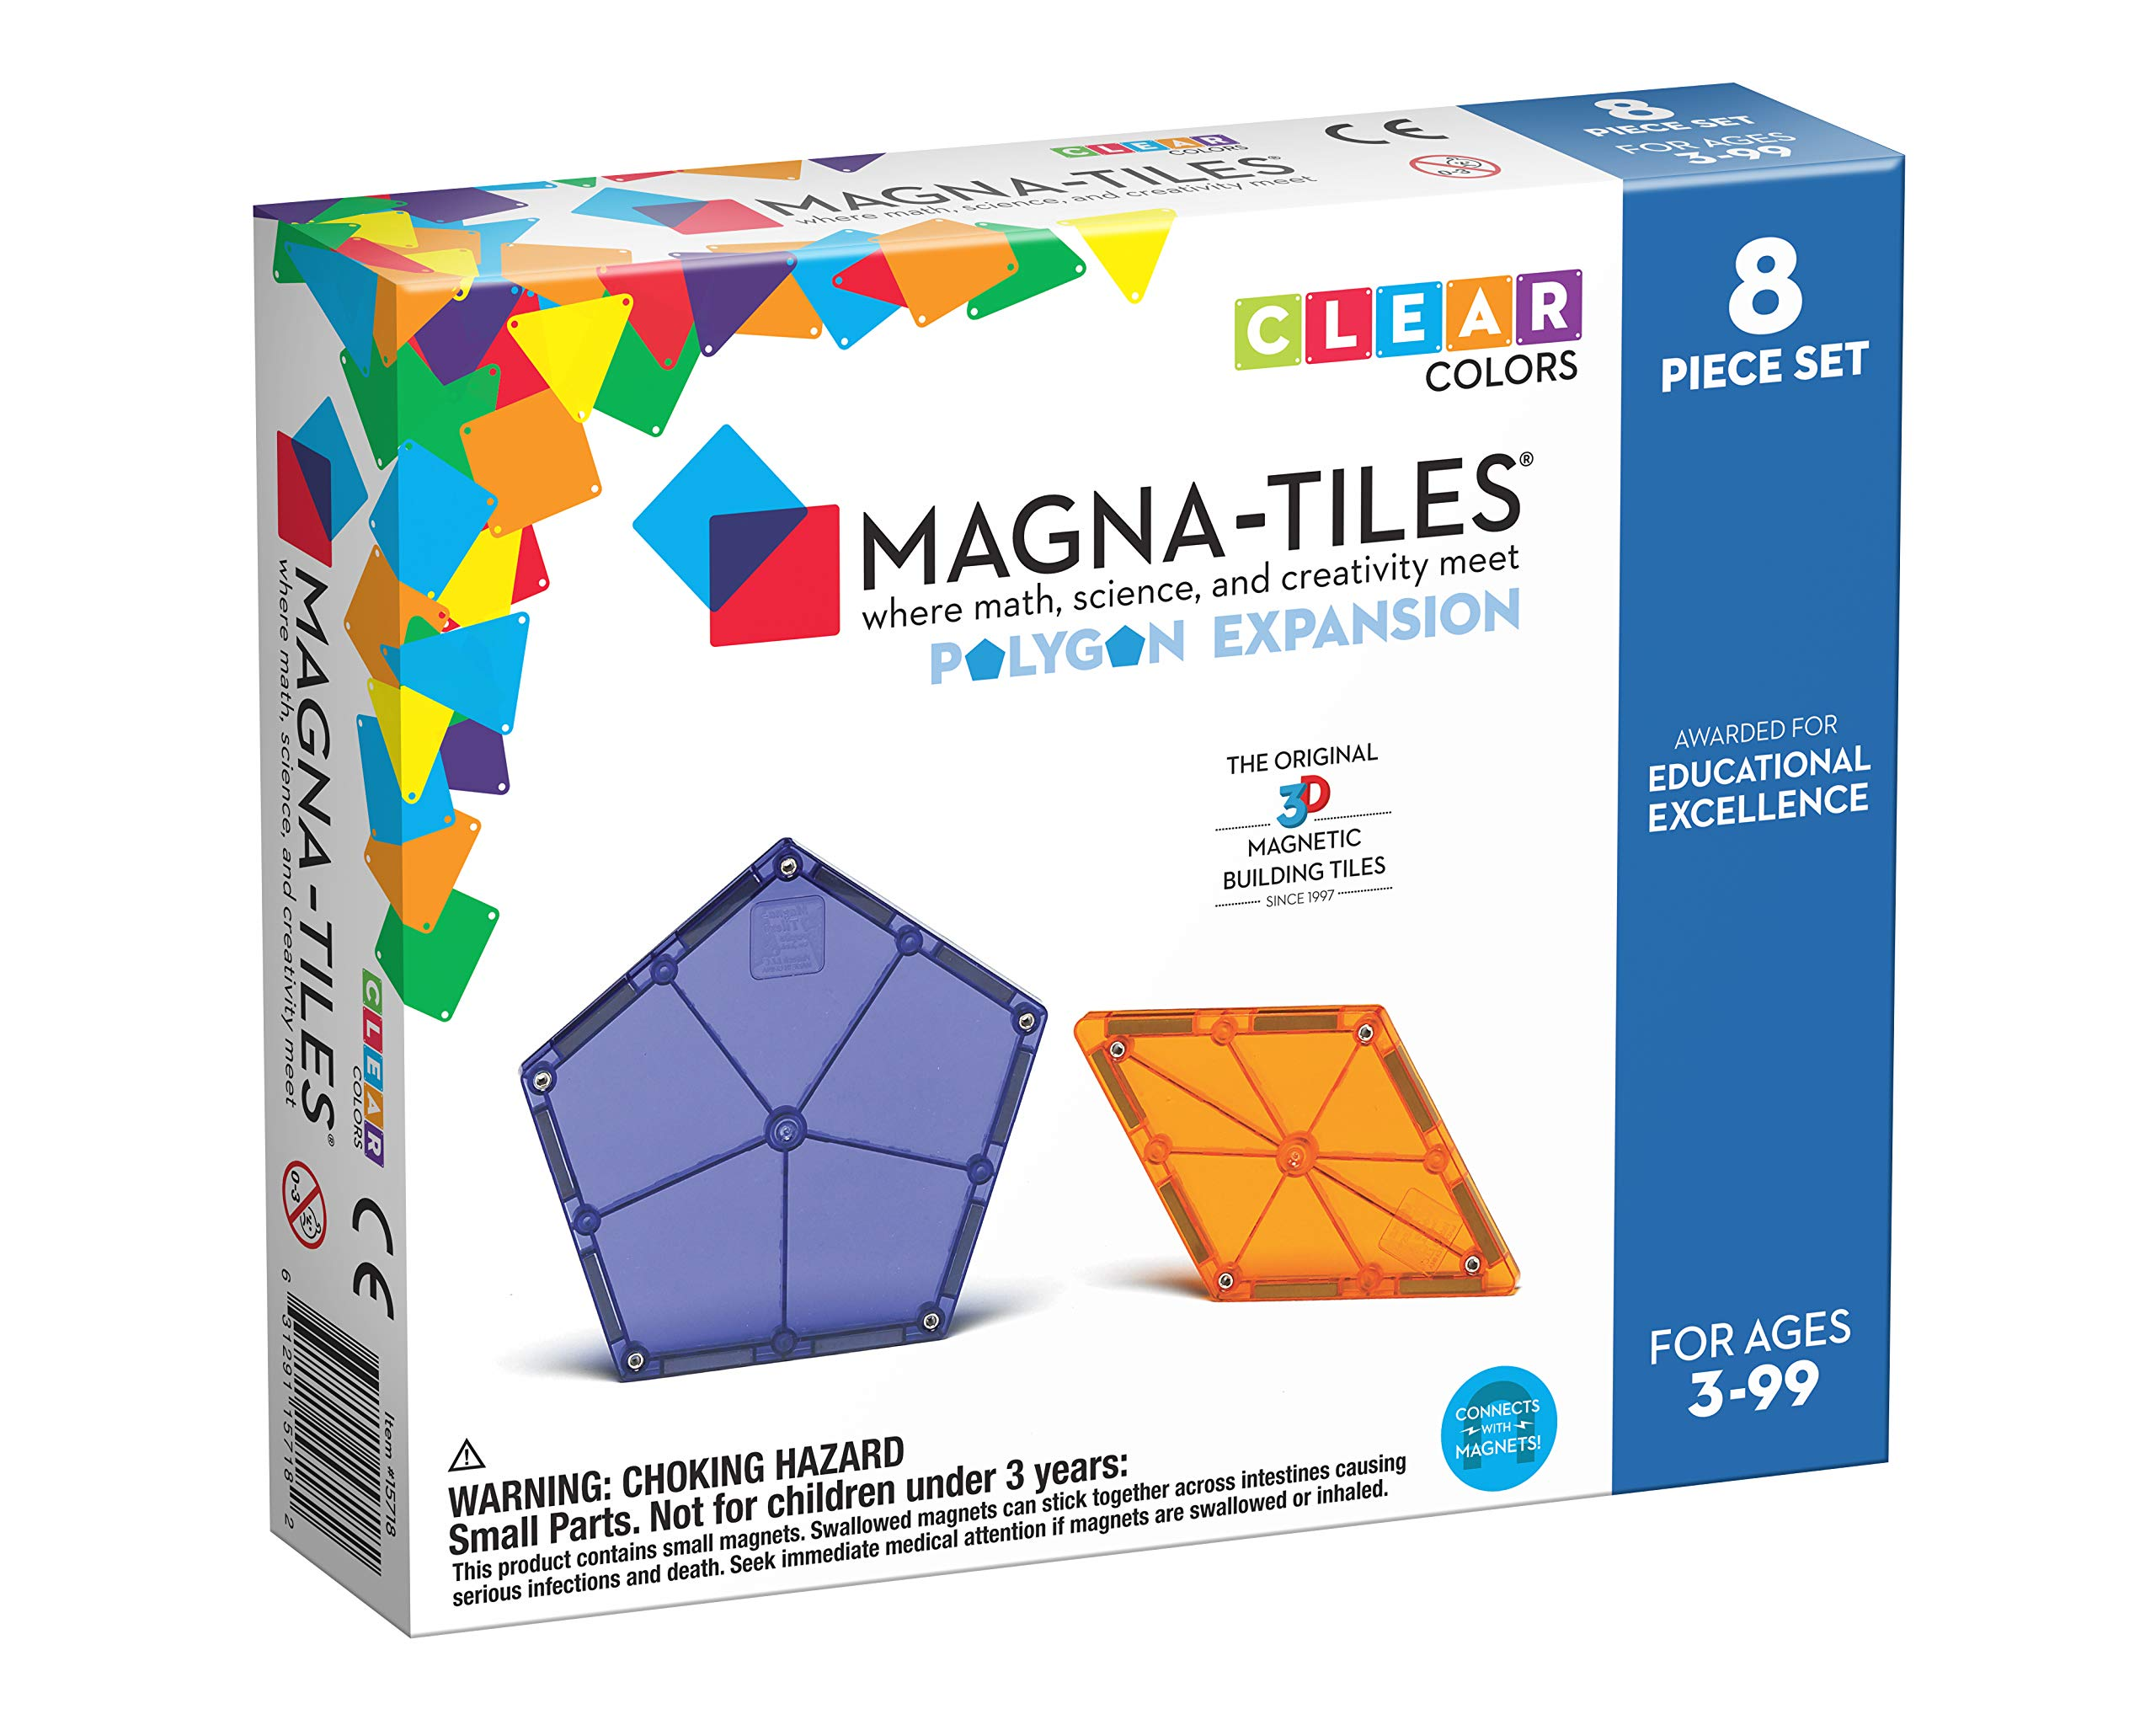 Magna Tiles Polygons Expansion Set, The Original Magnetic Building Tiles for Creative Open-Ended Play, Educational Toys for Children Ages 3 Years + (8 Pieces)